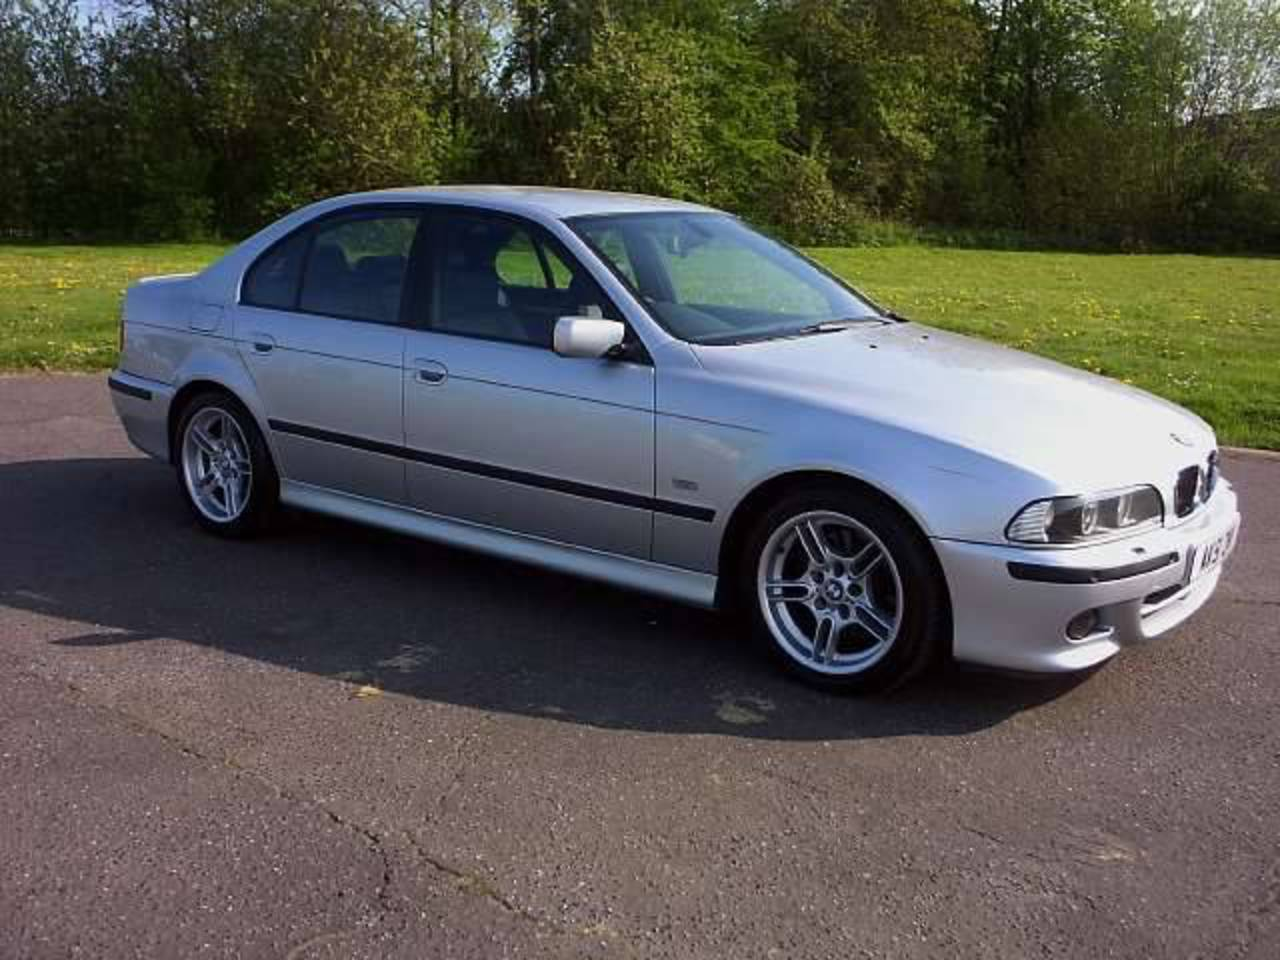 1999 BMW 5 Series 528i, 1999 BMW 528 528i picture, exterior